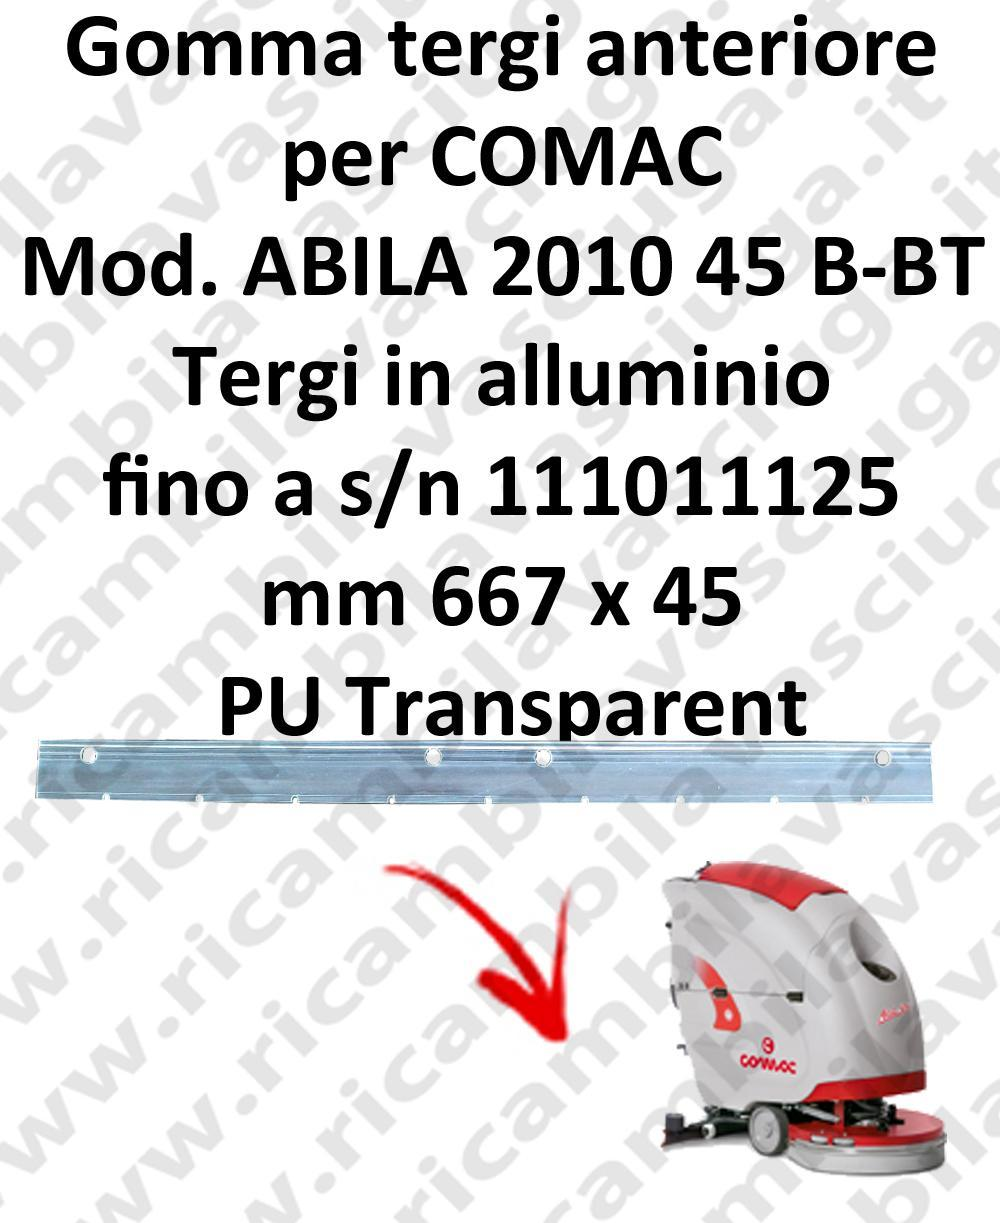 ABILA 2010 45 B - BT till s/n 111011125 Front Squeegee rubber for COMAC accessories, reaplacement, spare parts,o scrubber dryer squeegee